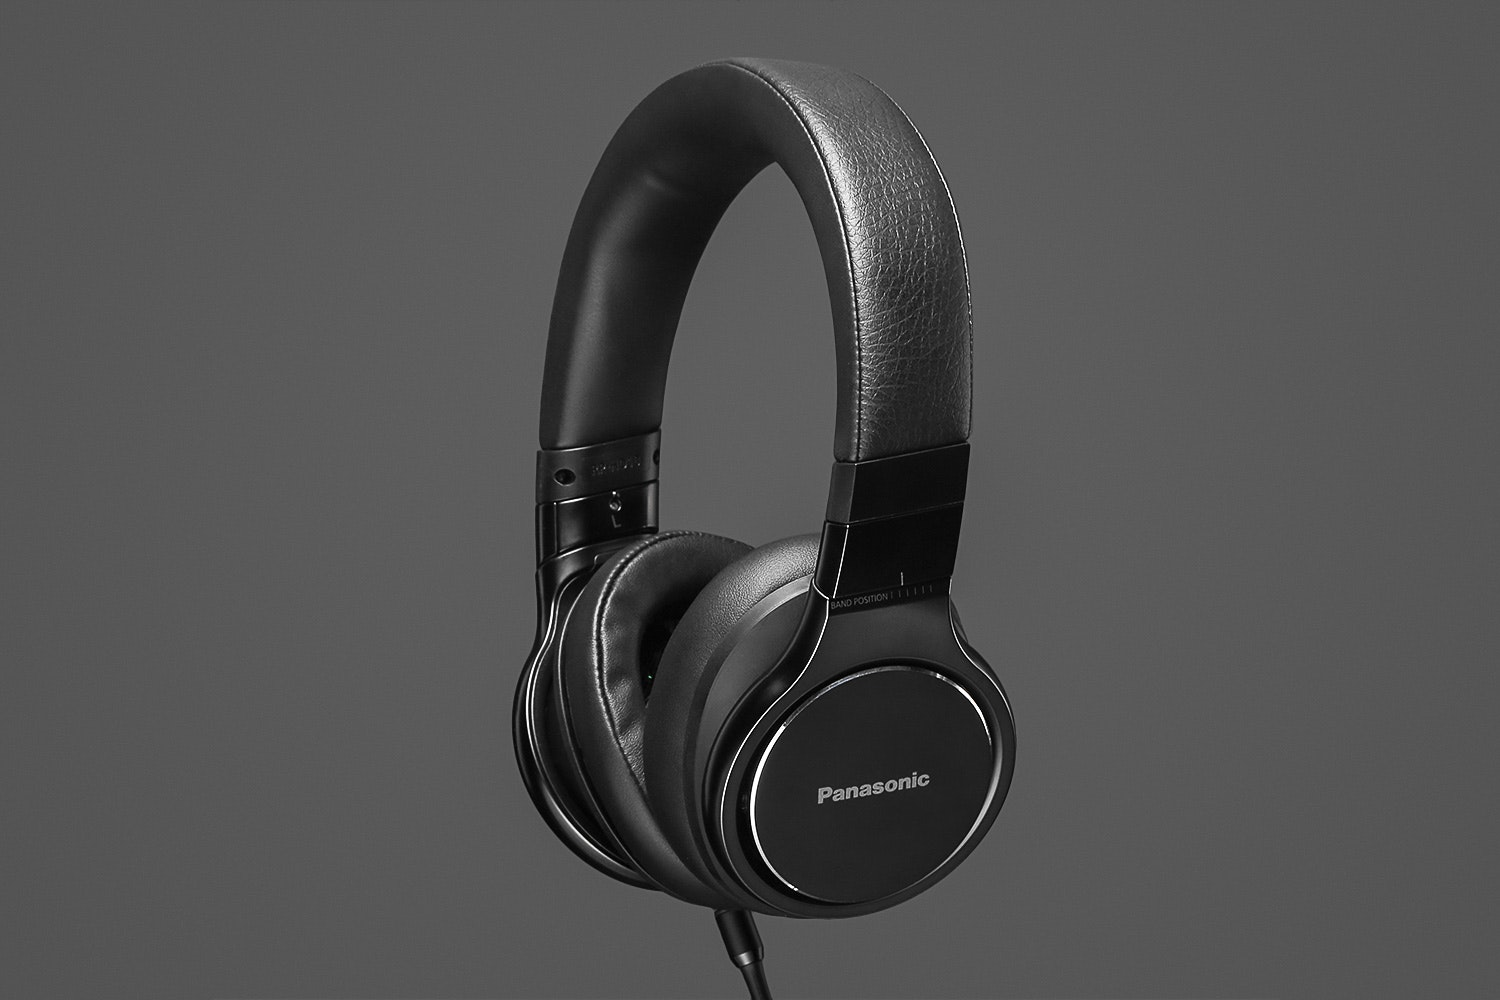 Panasonic HD10 Headphones